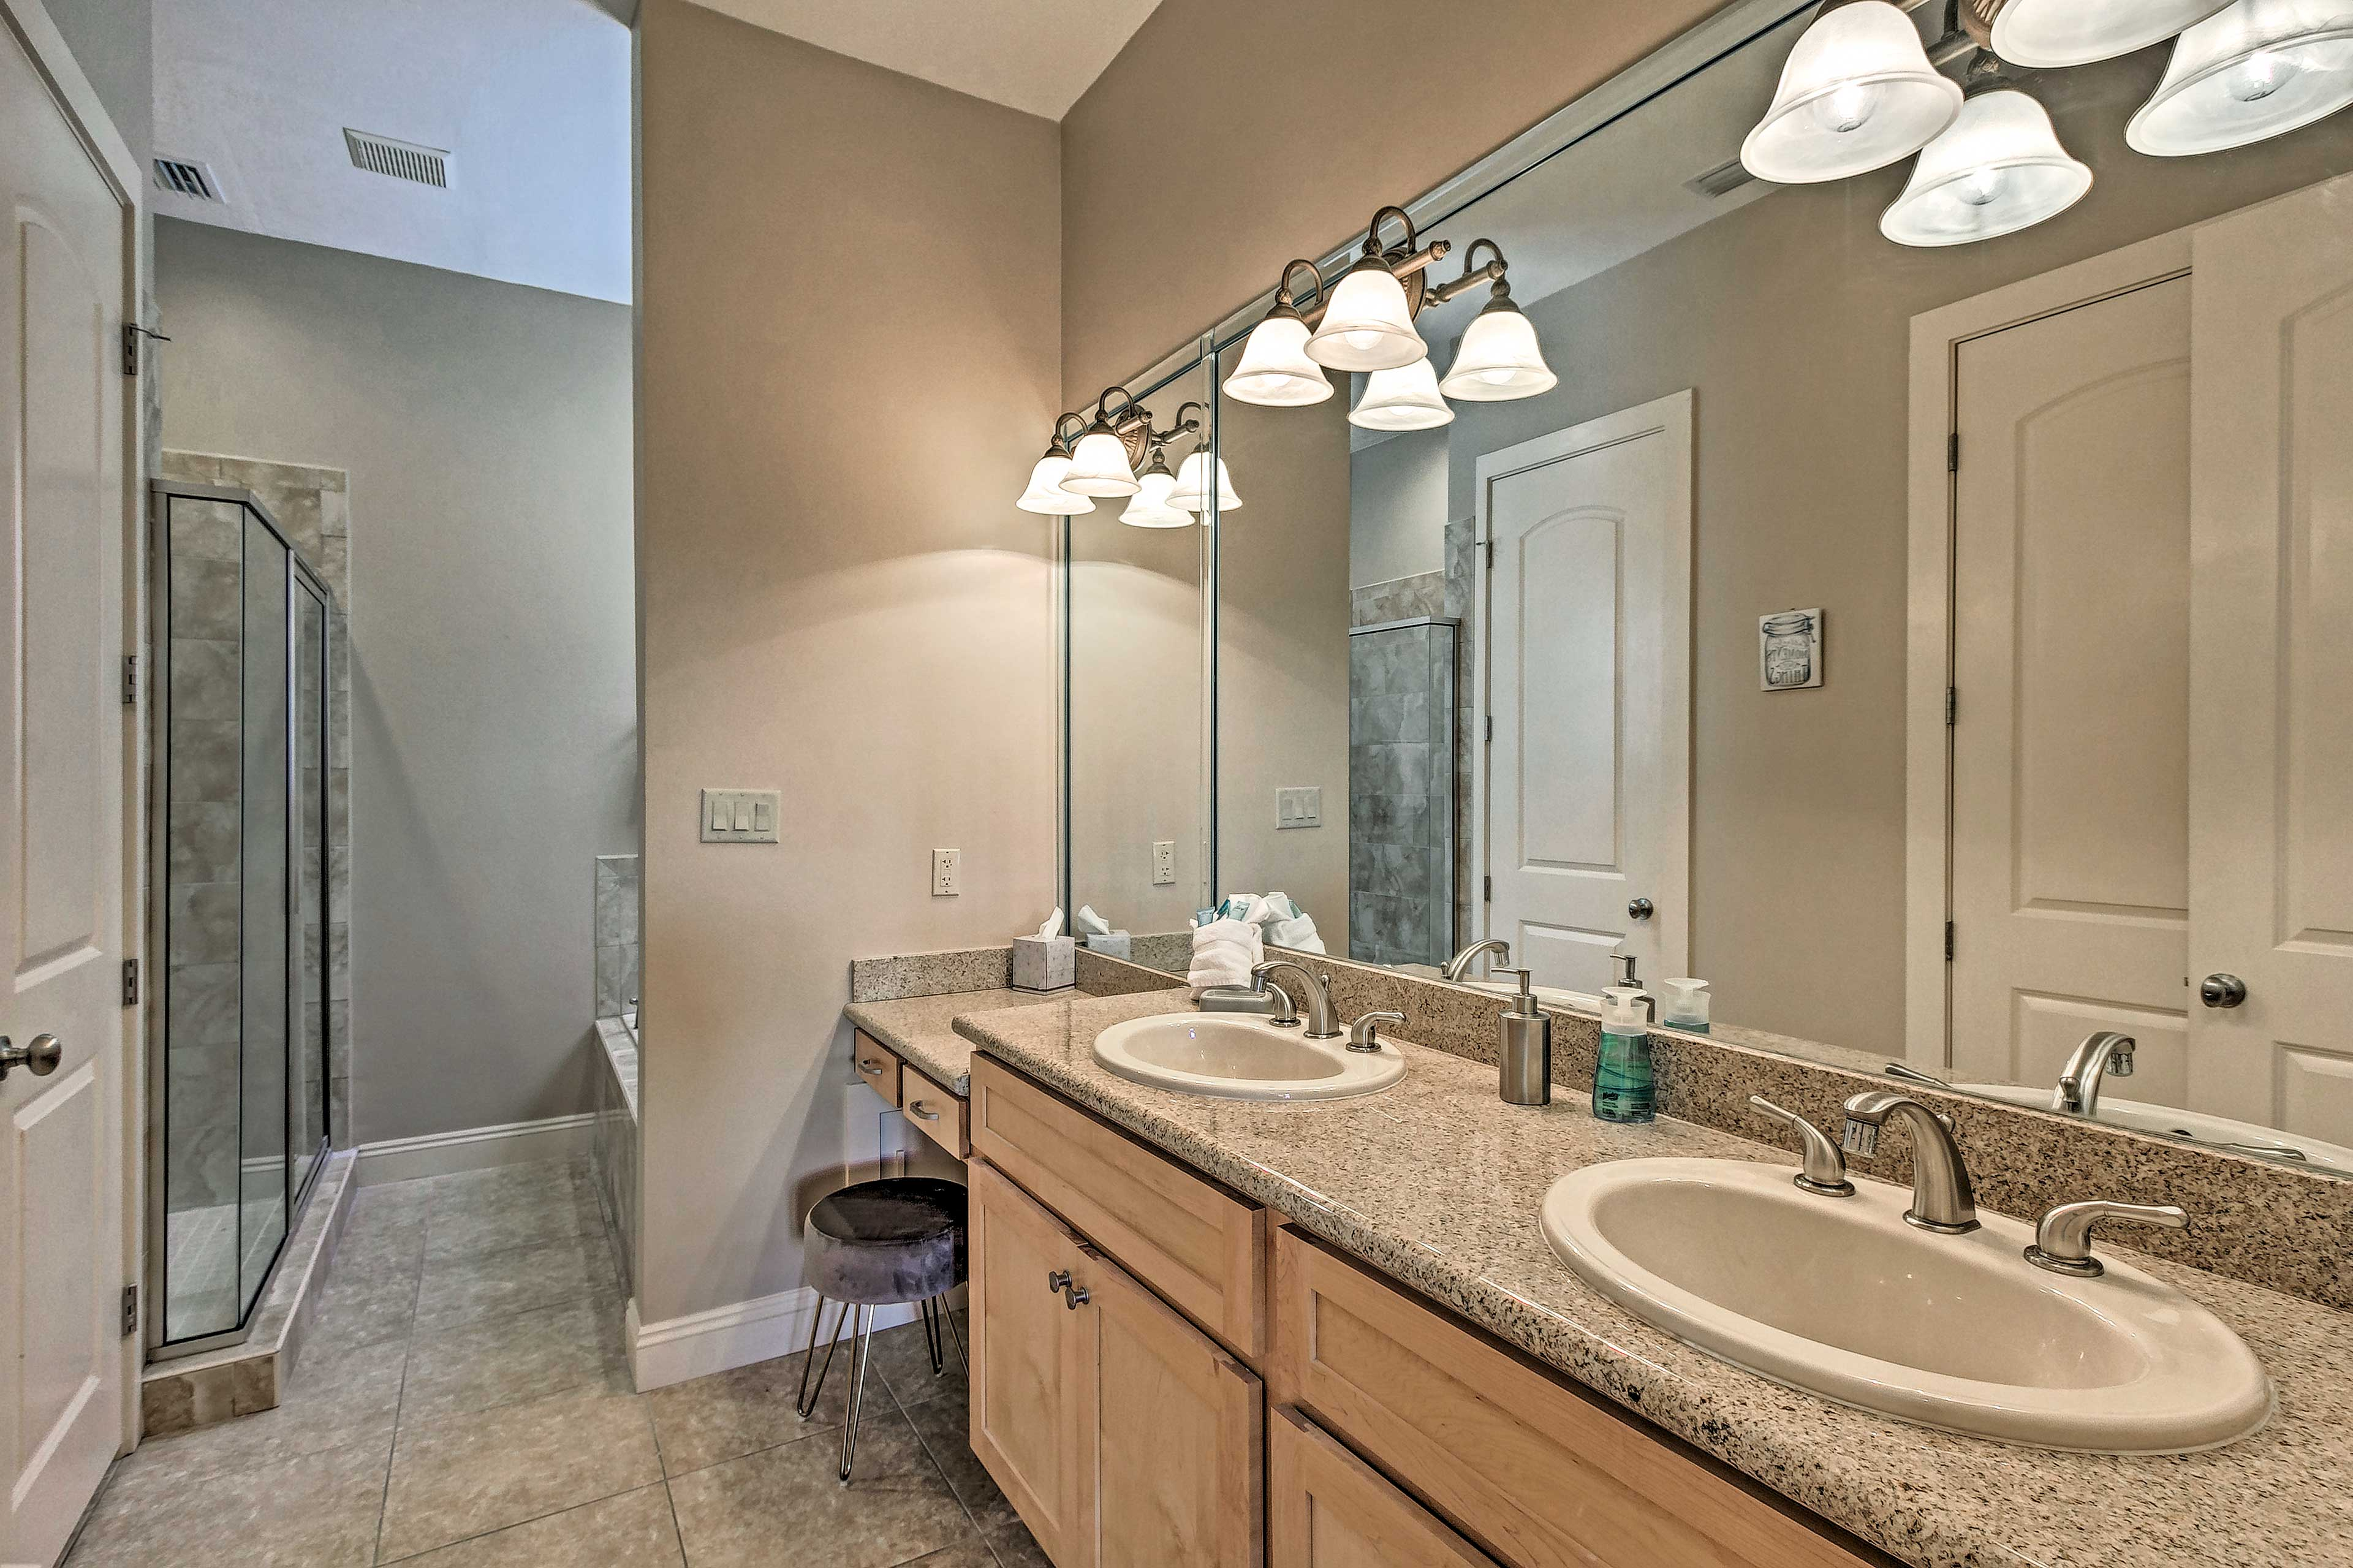 As an added bonus, the room also includes this large en-suite bathroom.